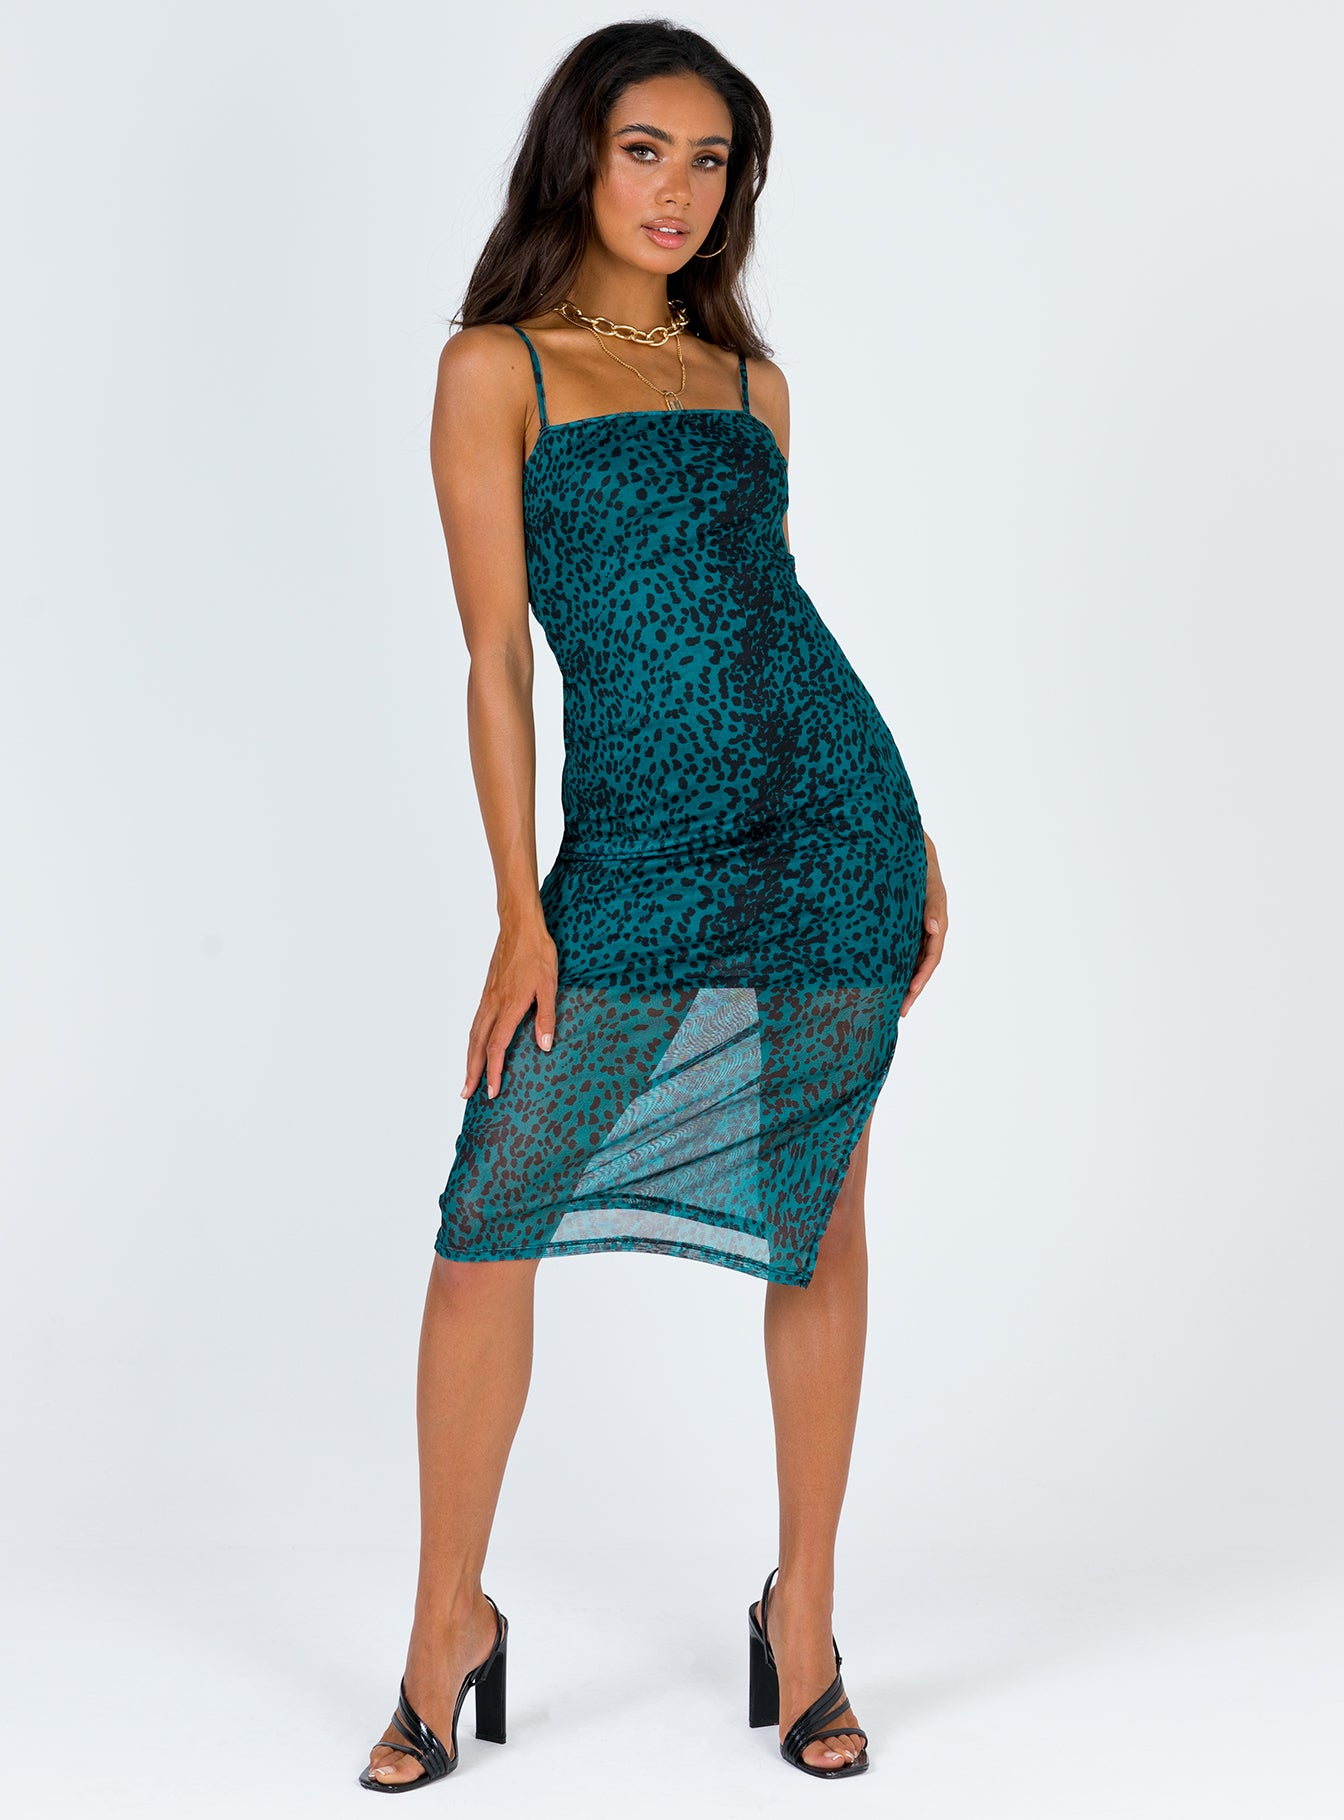 TWIIN Sprint Mesh Slip Dress